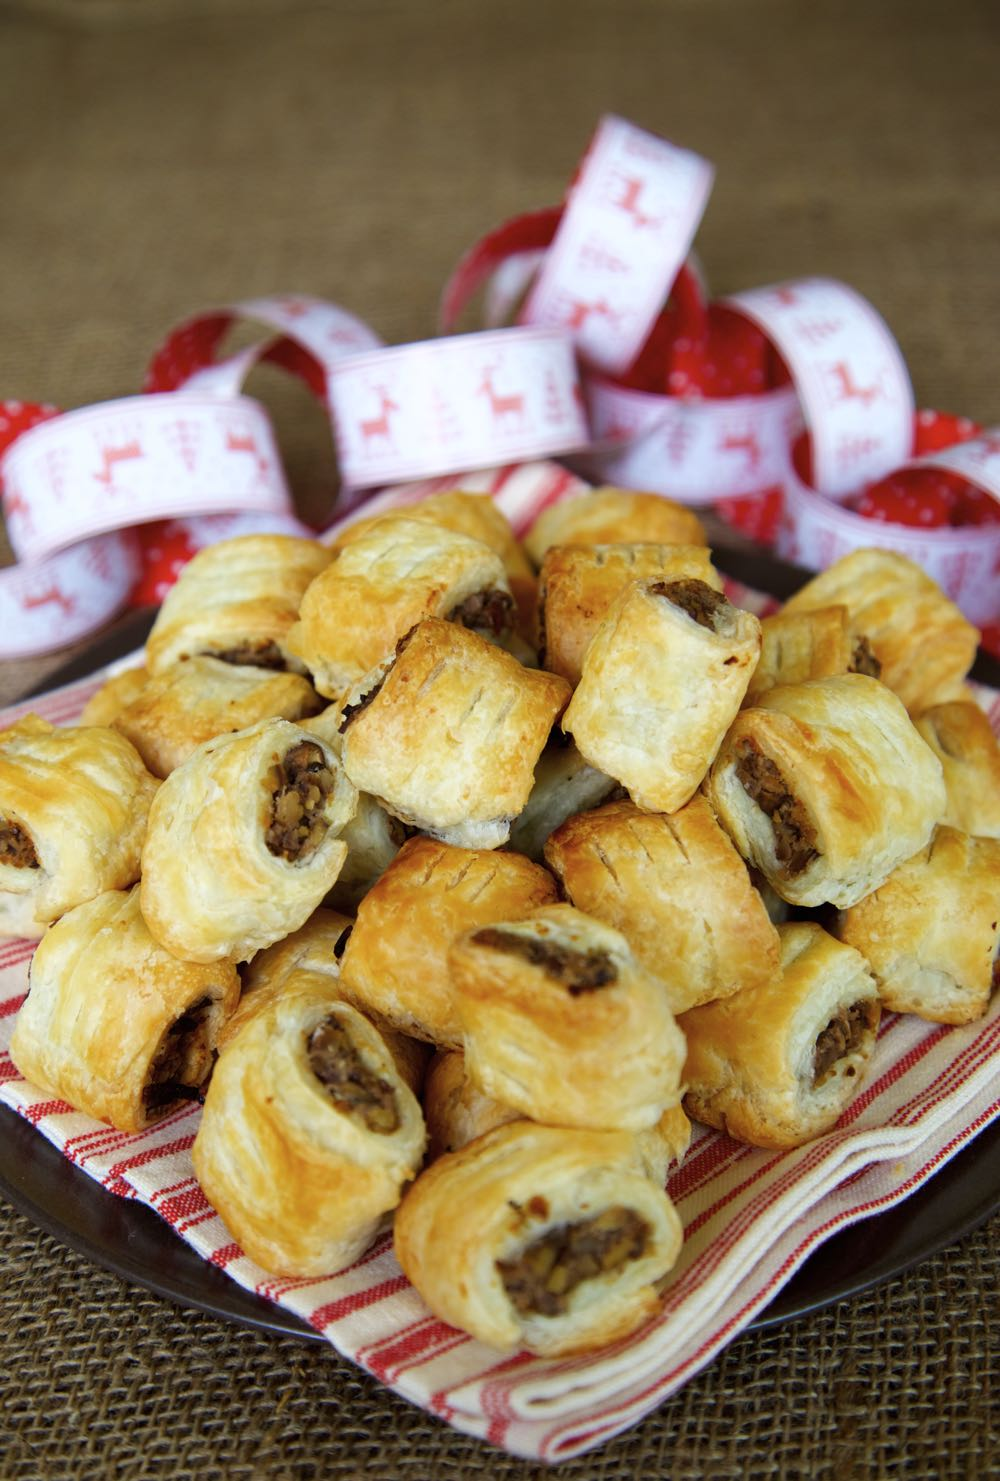 Mini vegan sausage rolls filled with chestnuts, mushrooms, red wine and herbs.